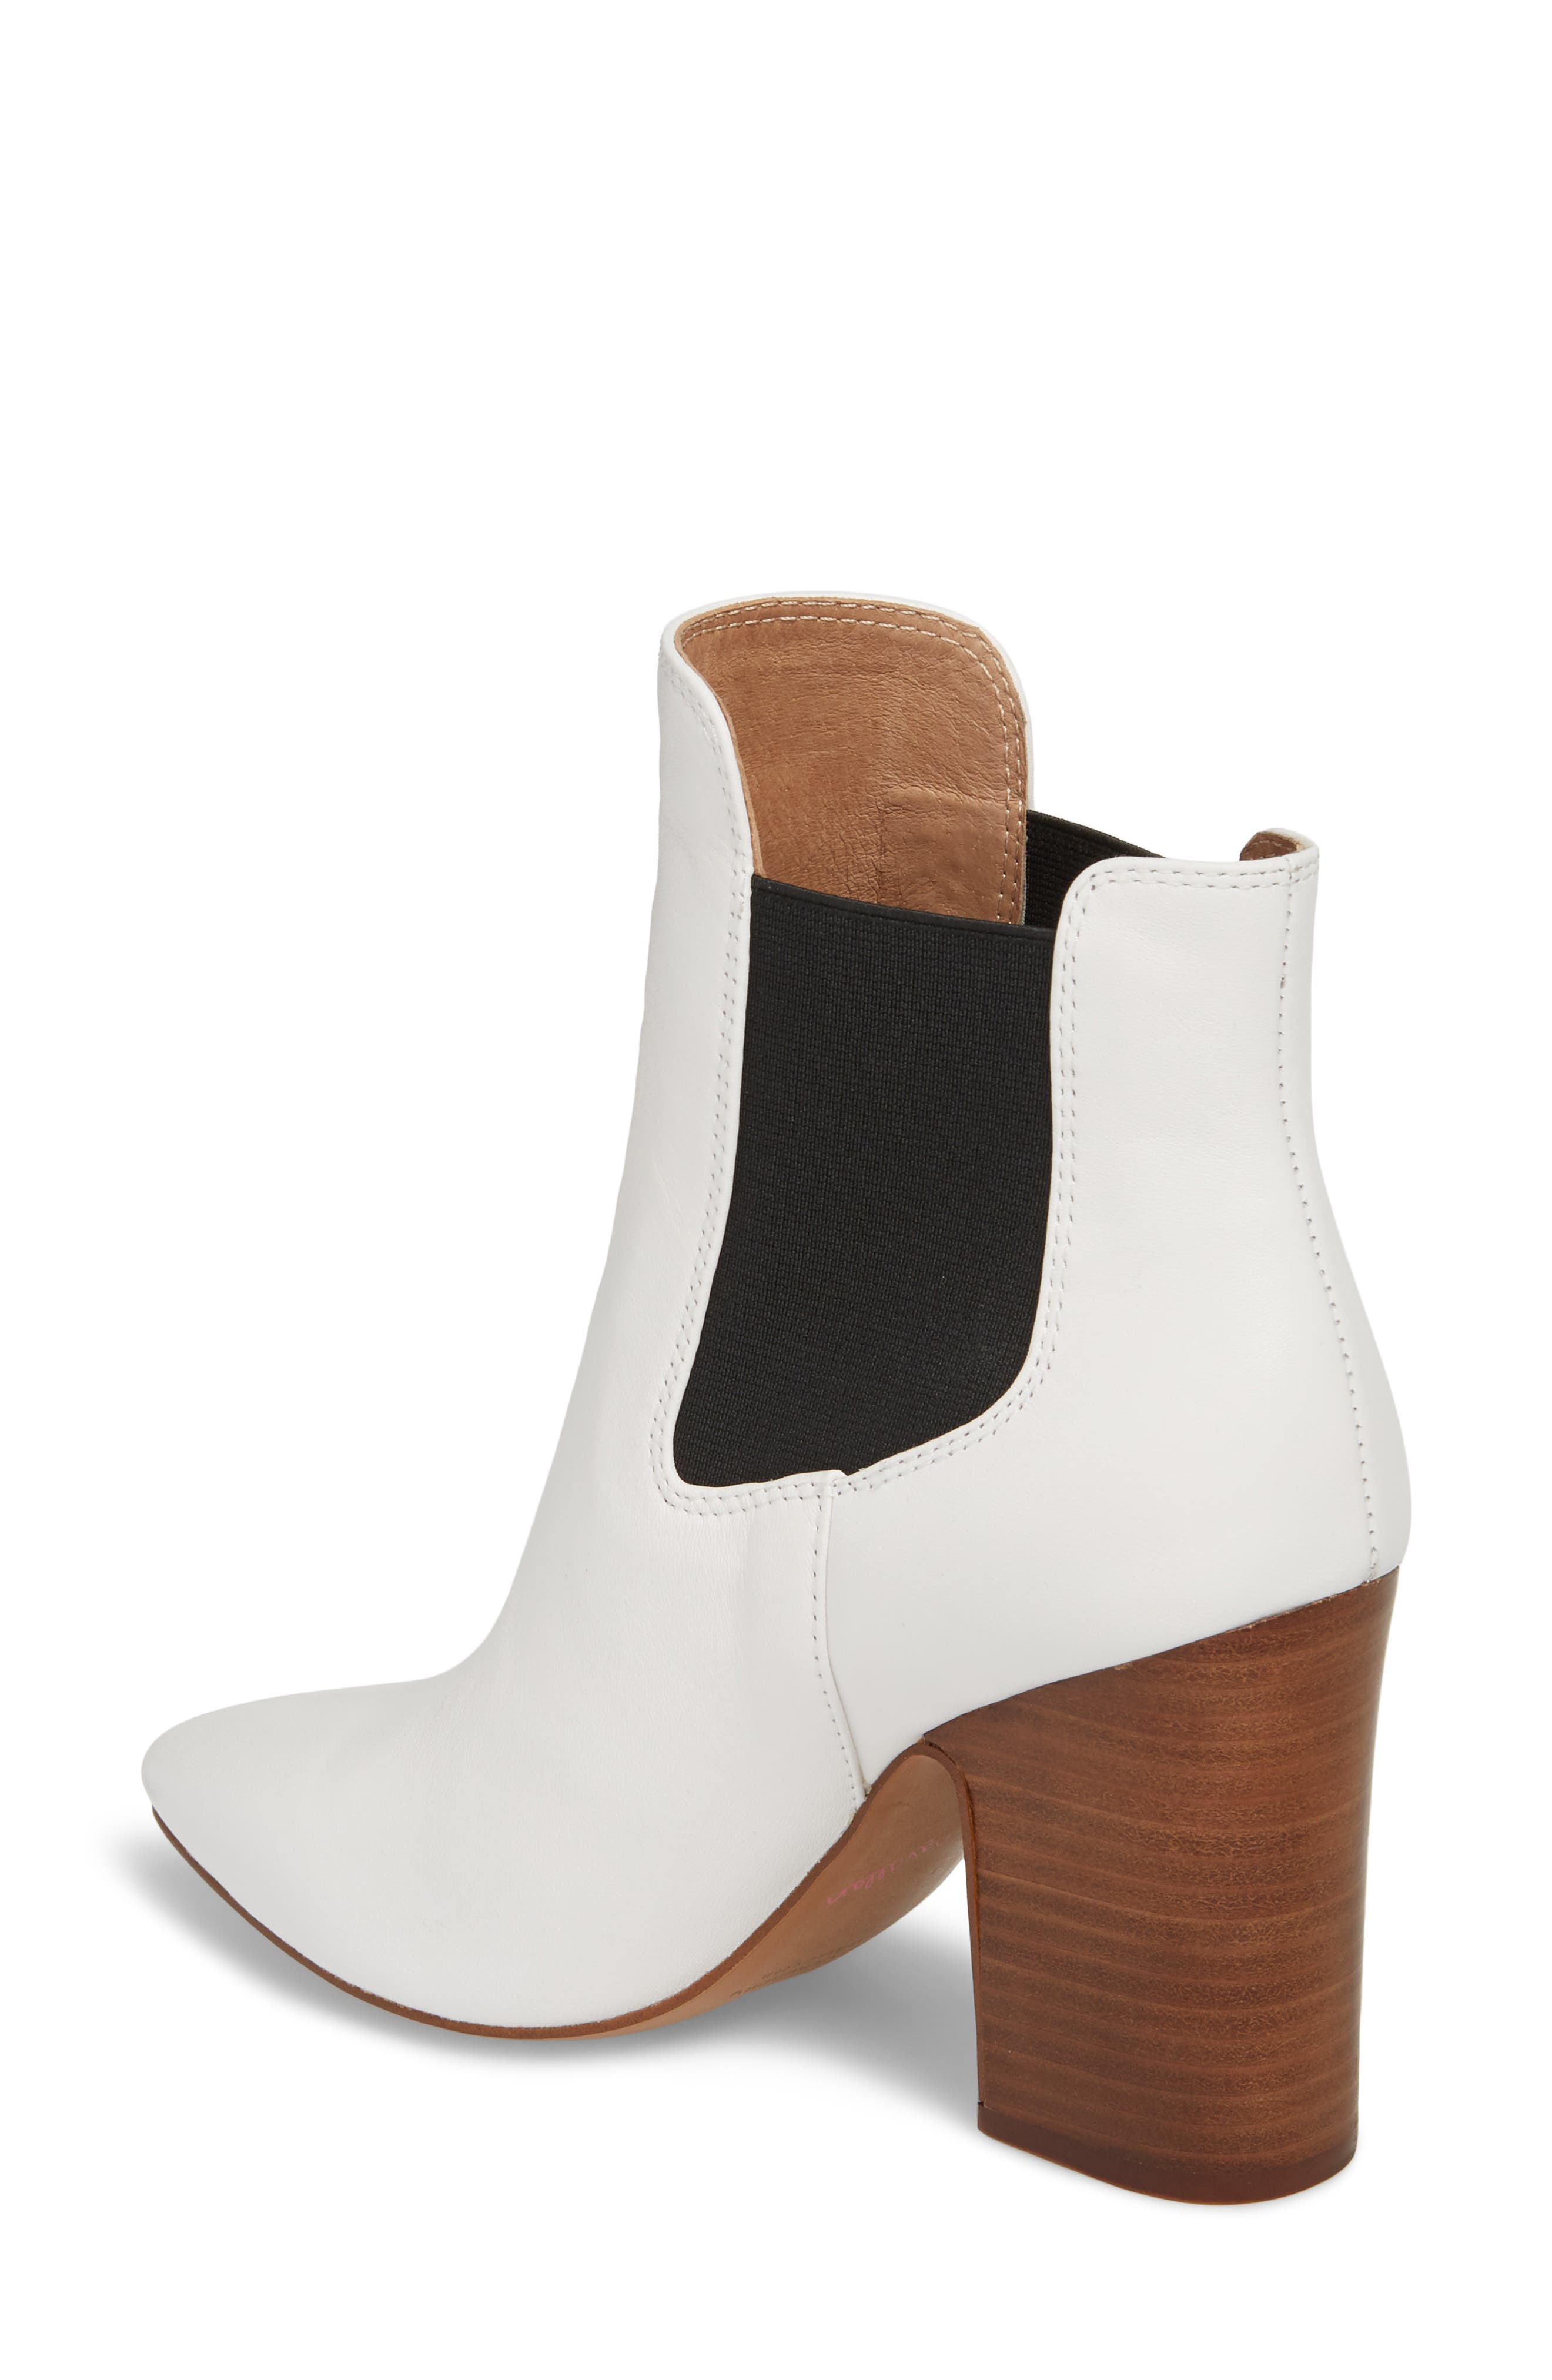 Starlight Bootie,                             Alternate thumbnail 2, color,                             WHITE LEATHER